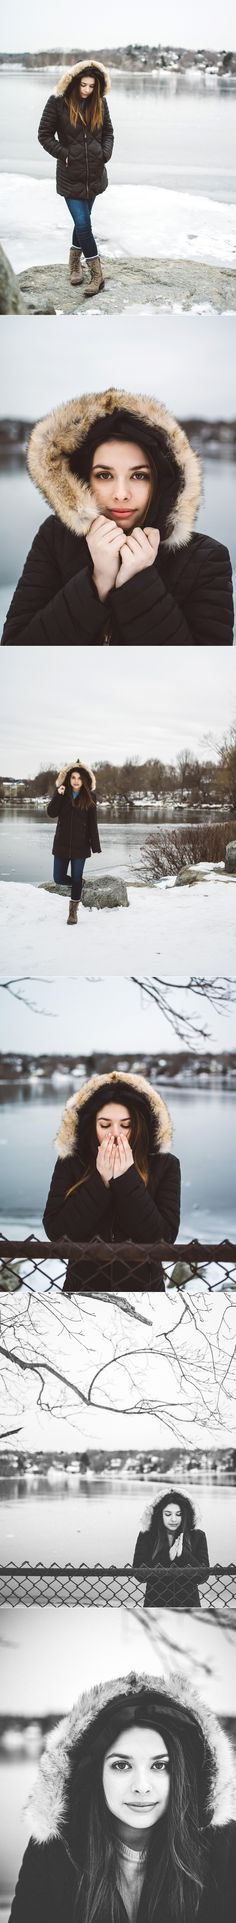 Snowy High School Senior Portraits | Posing and Styles in Fur Winter Coat | Elizabeth Clark Photography, Boston MA